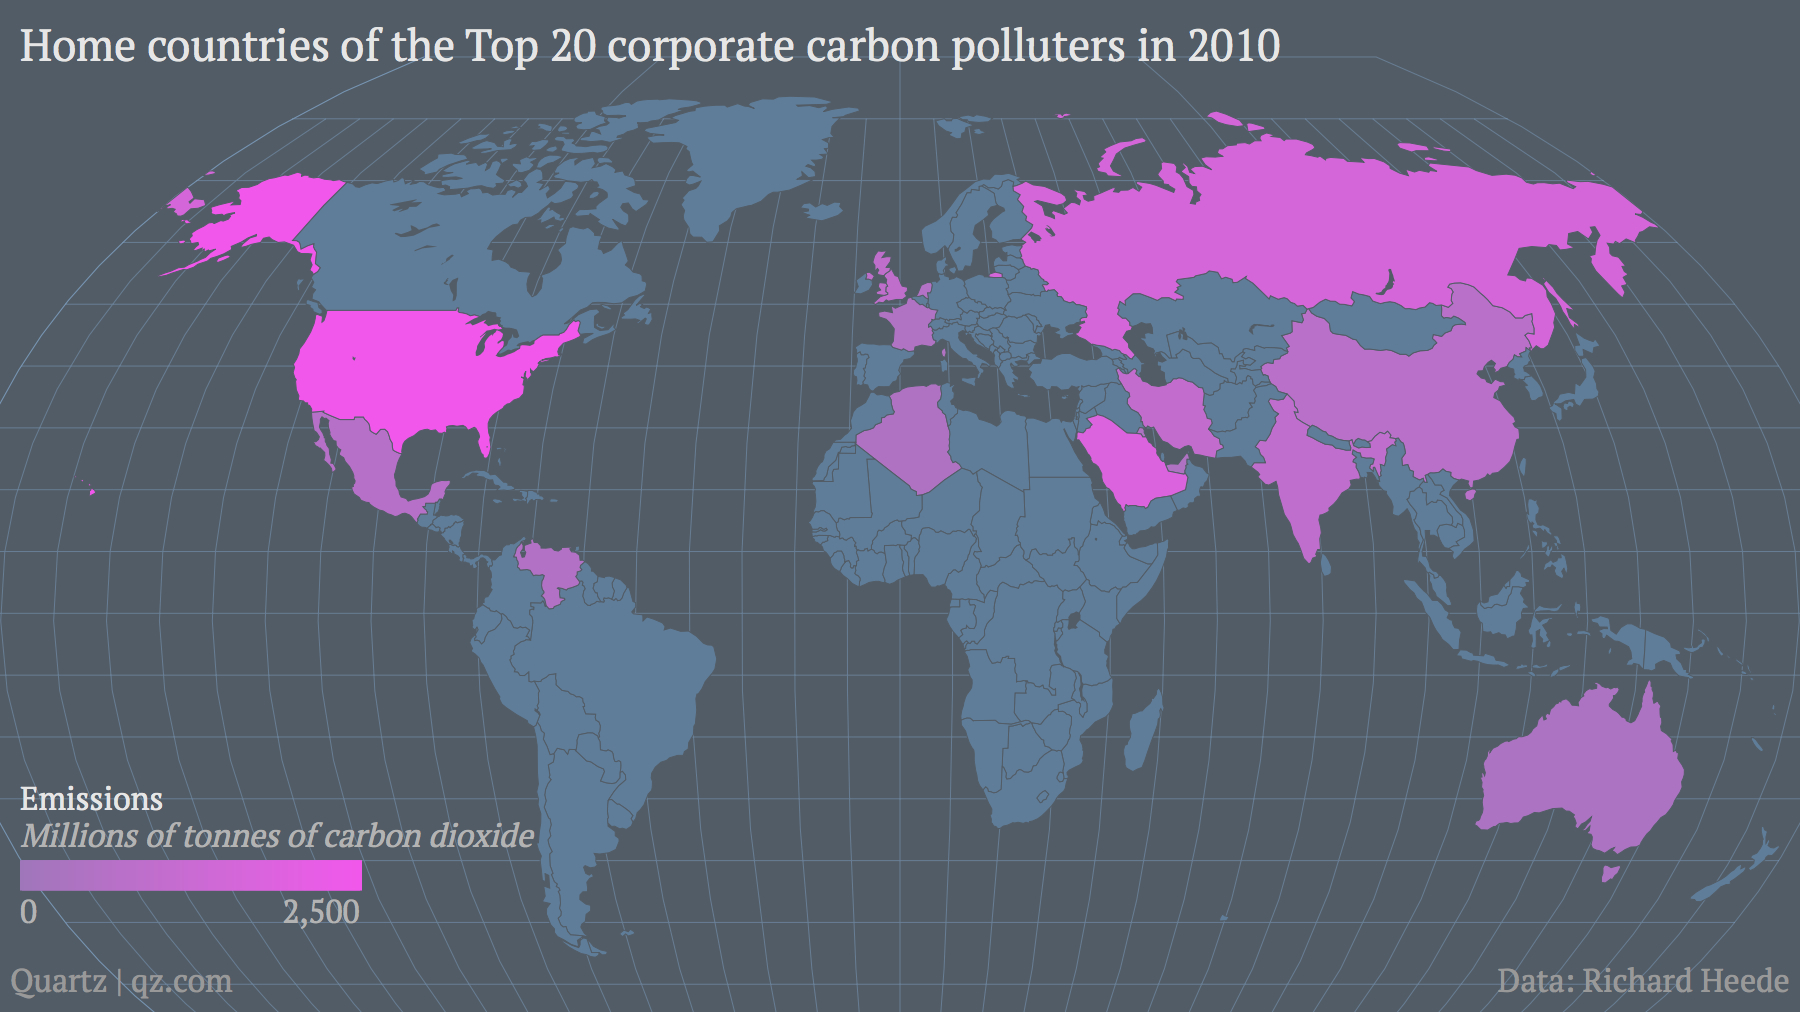 Top 20 corporate carbon polluters 2010